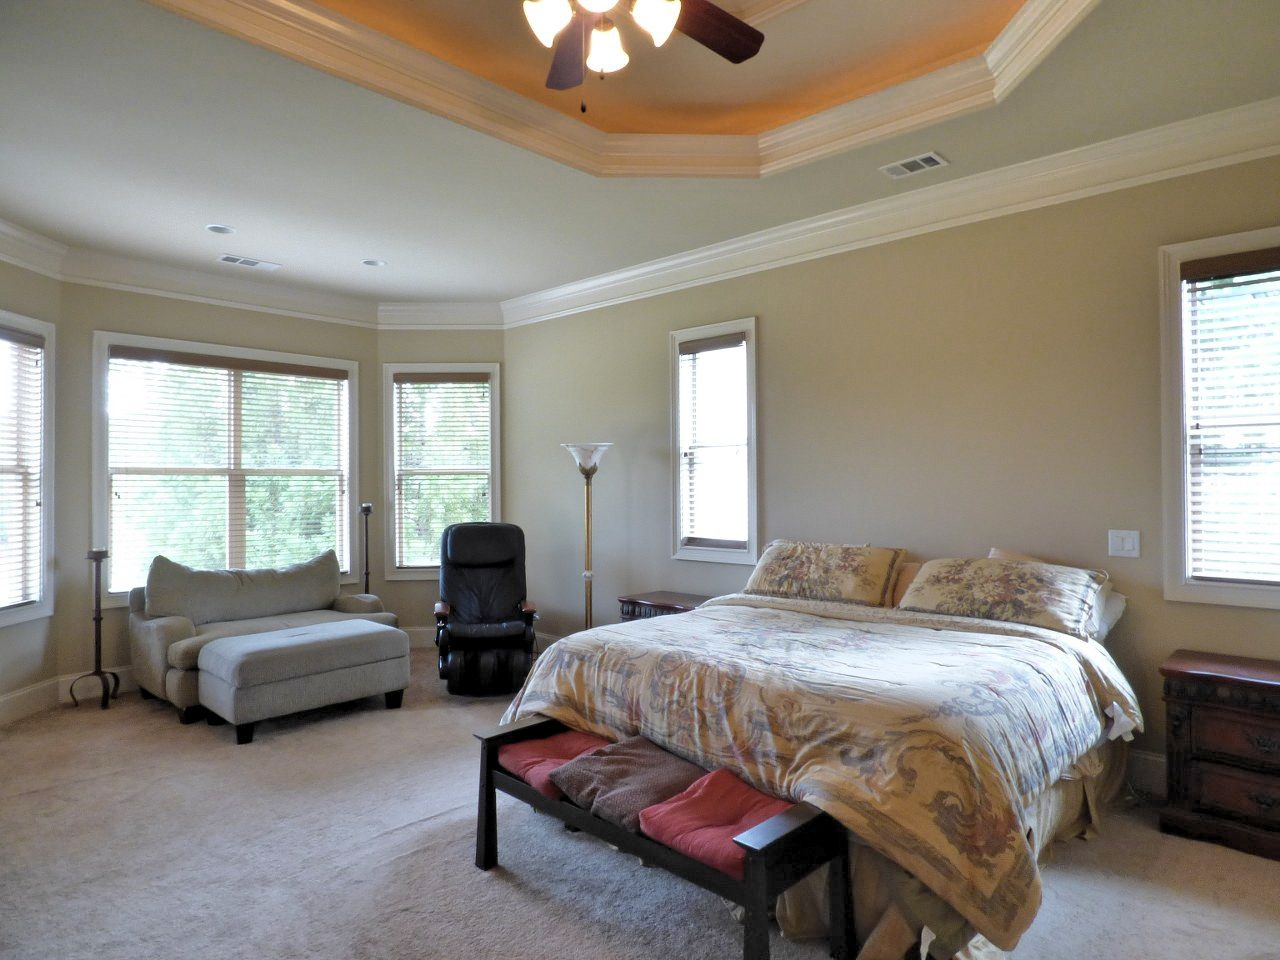 Master bedroom has trey ceiling and accent lights, crown